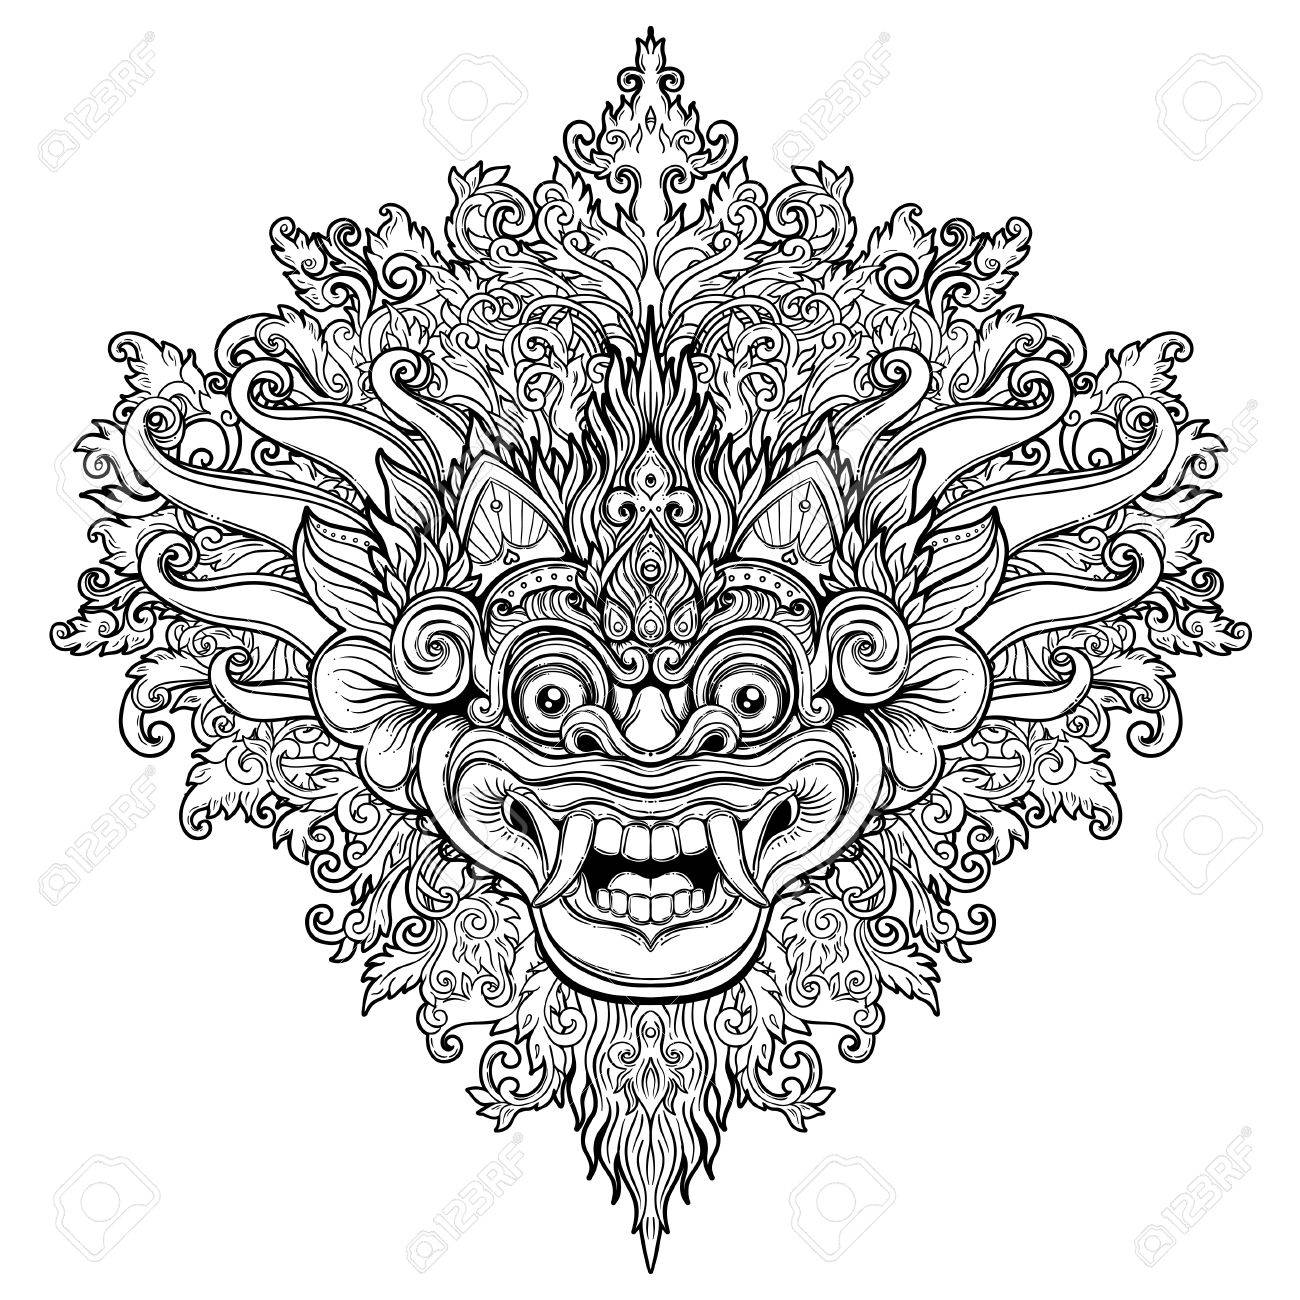 Barong Traditional Ritual Balinese Mask Vector Decorative Ornate